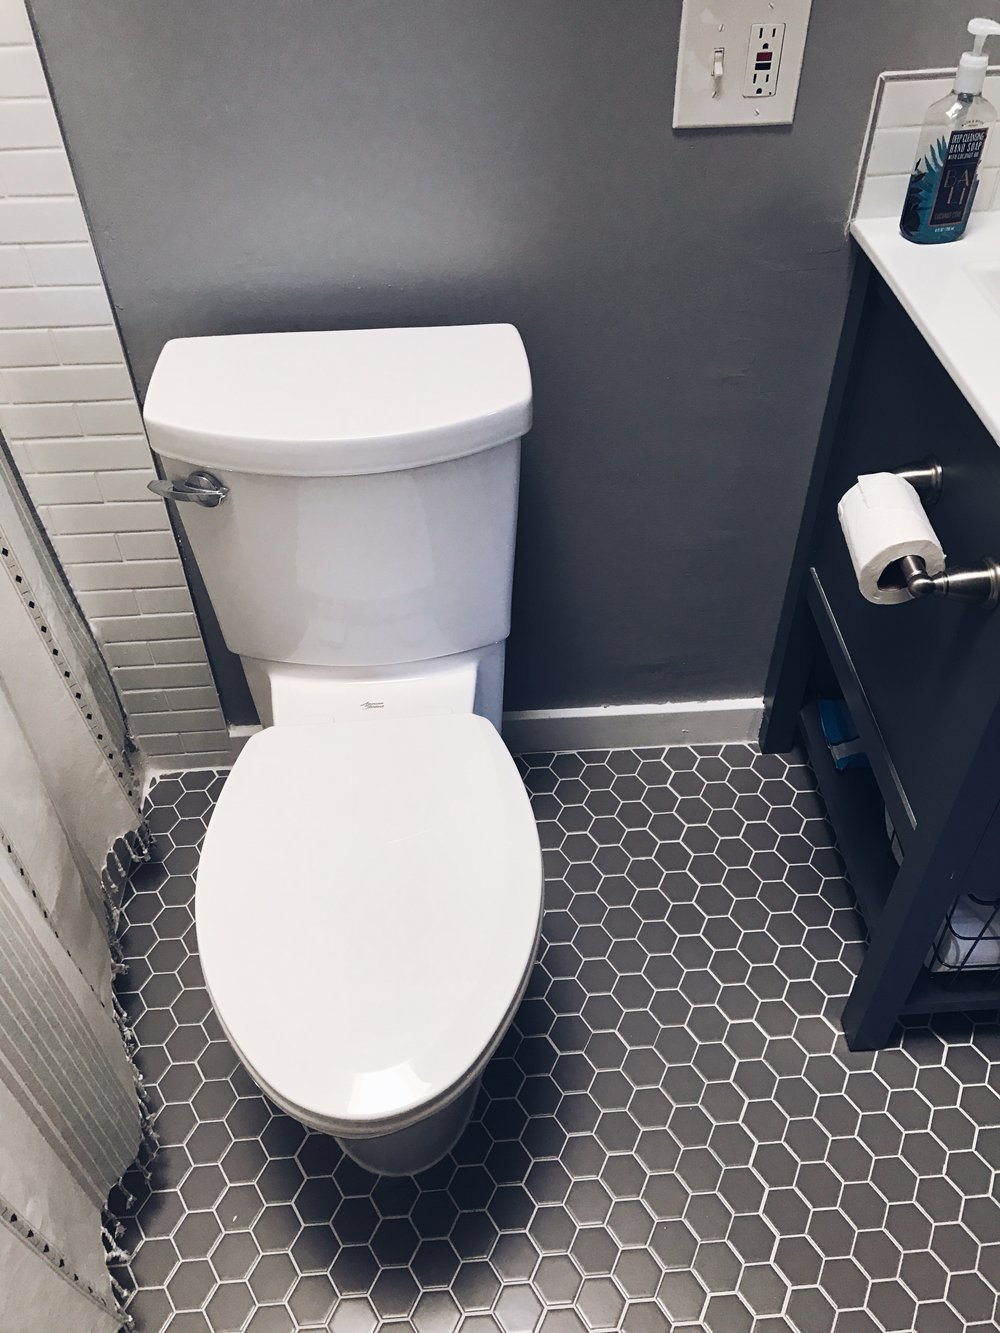 Toilet - After